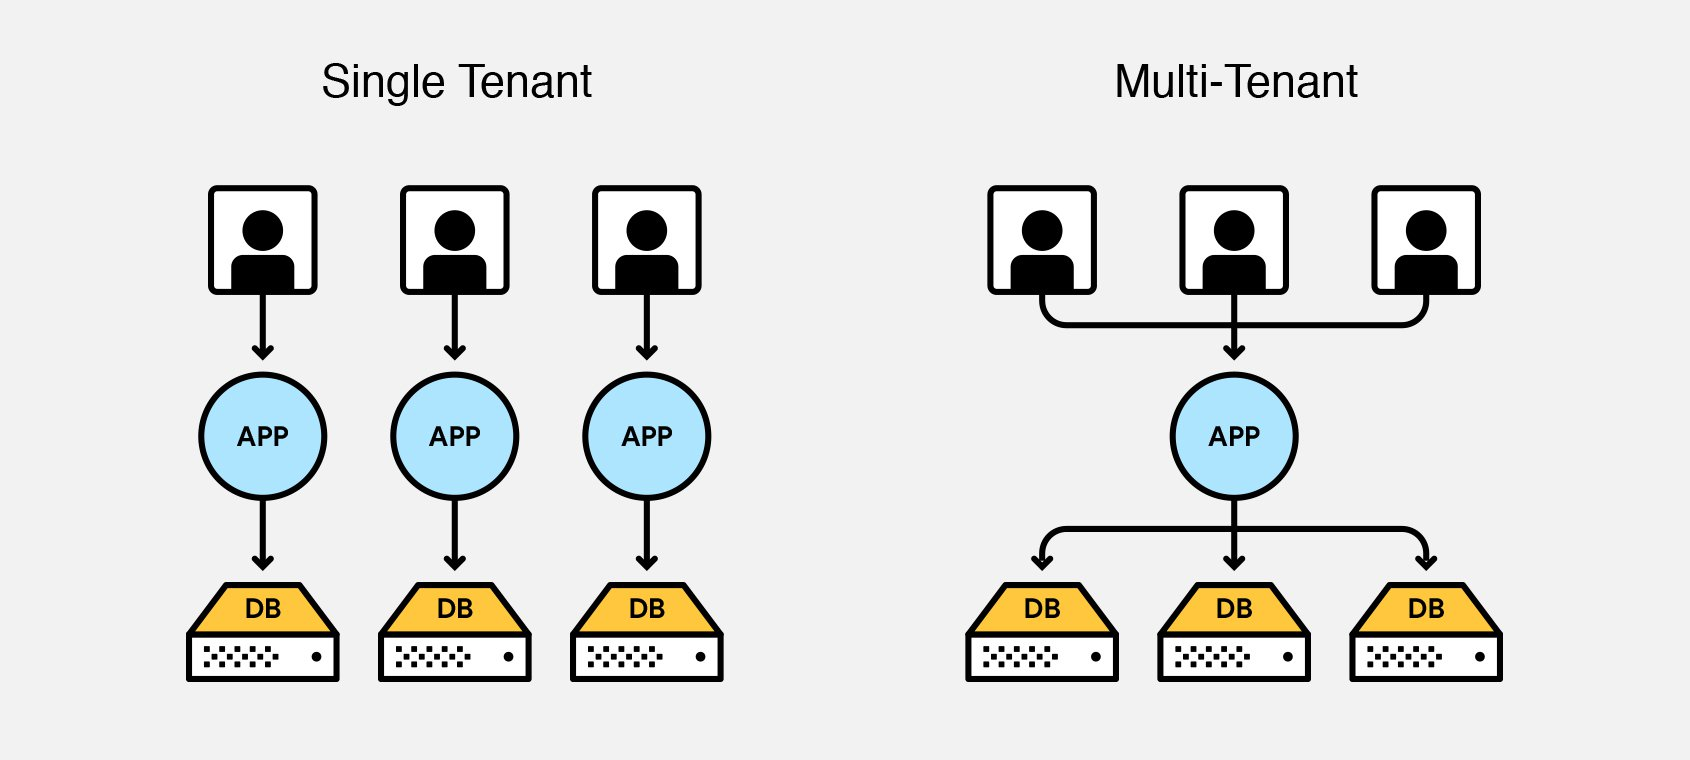 Single tenancy vs multi-tenancy